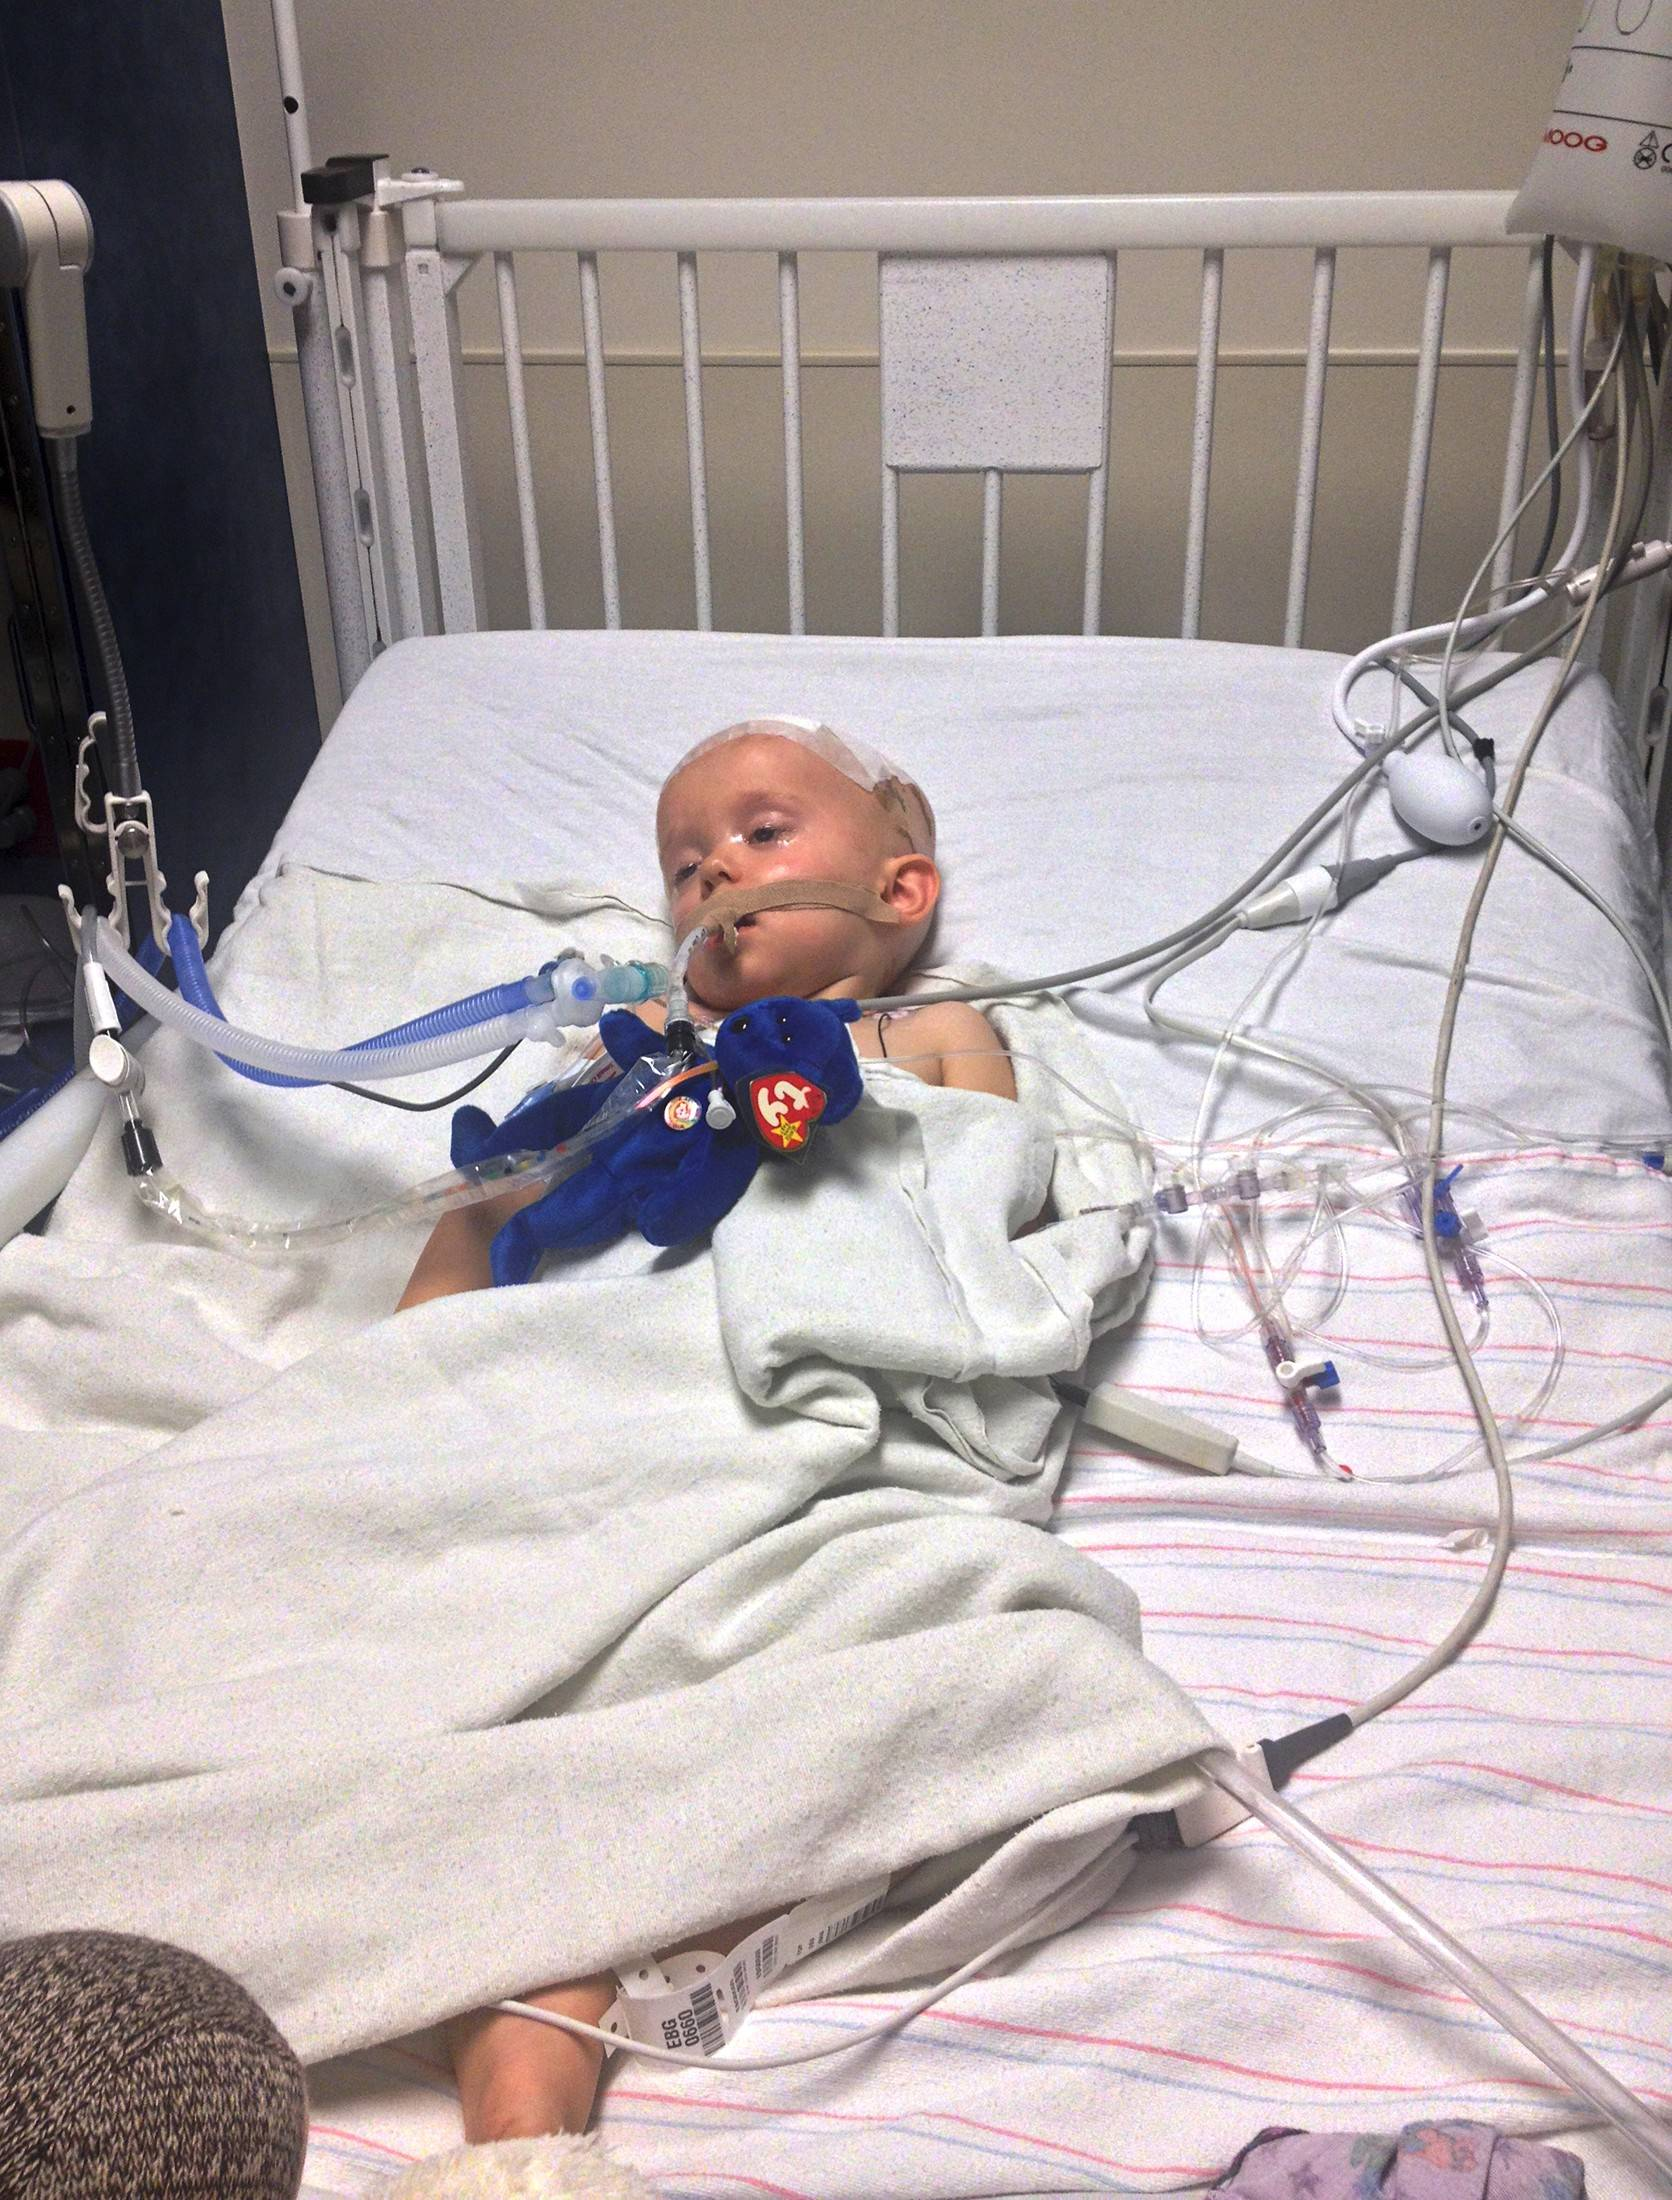 Noah Craten of Glendale, Ariz., is shown after surgery at Cardon Children's Medical Center in Mesa, Ariz., in October. An infection in his bloodstream had caused abscesses on his brain. Tests by state health officials showed he had been infected with a strain of Salmonella Heidelberg.